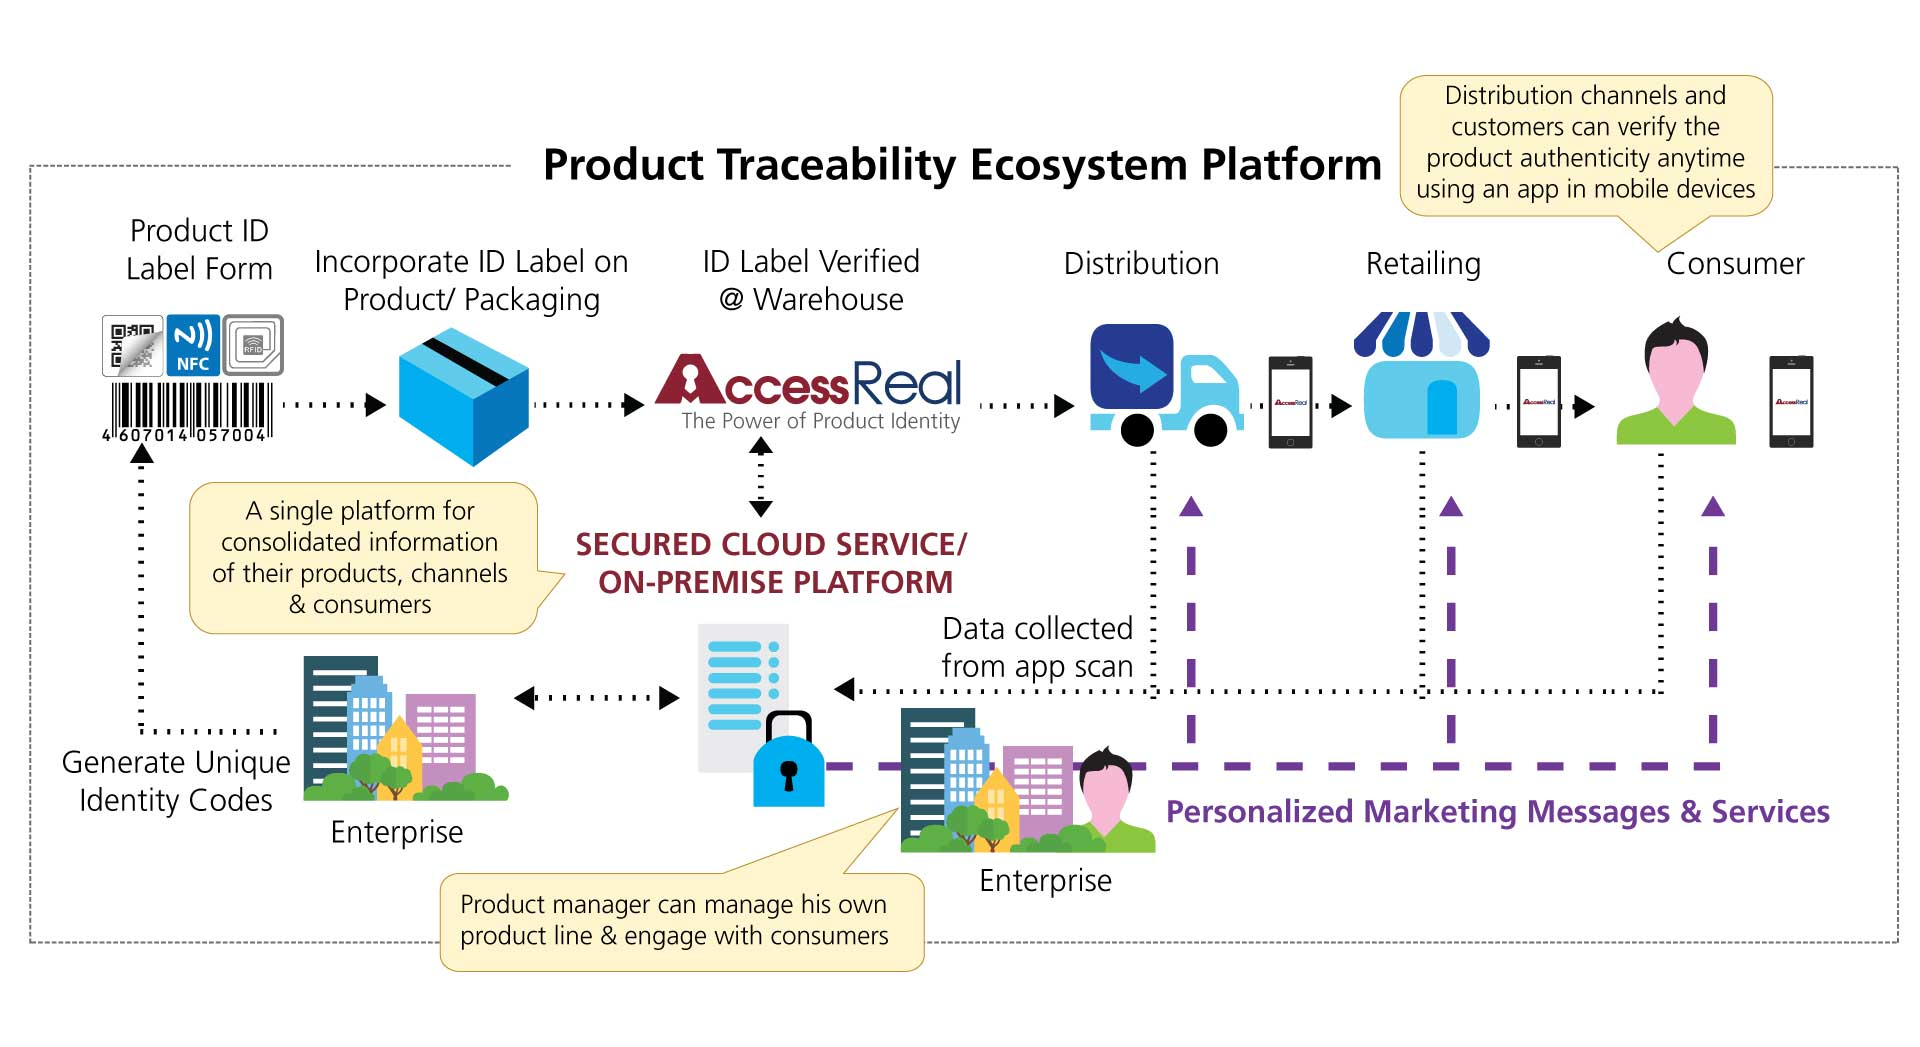 AccessReal Product Traceability Ecosystem